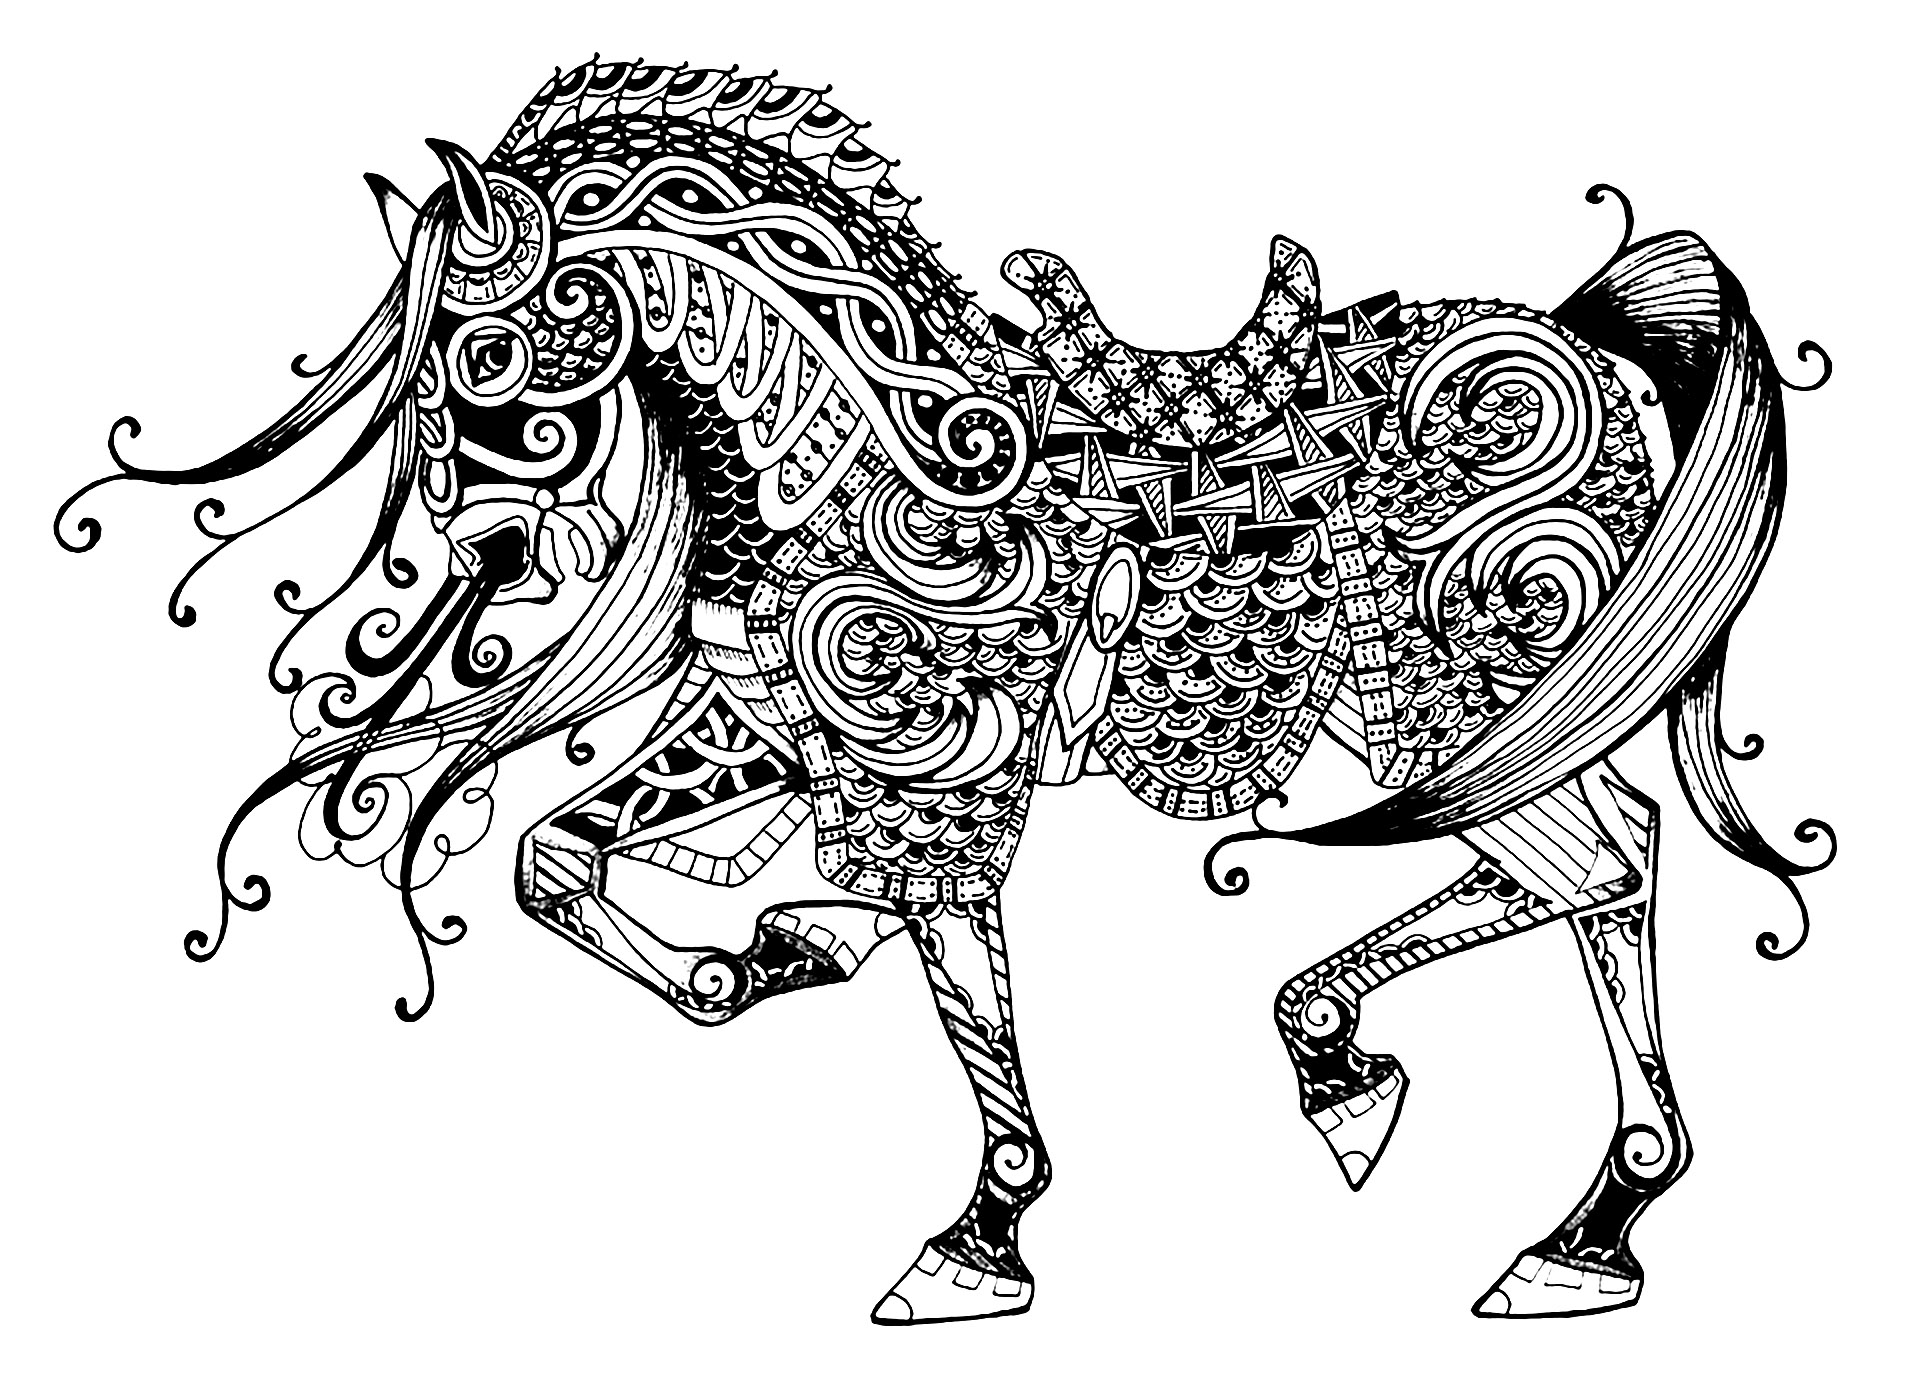 coloring pages of horses to print fun horse coloring pages for your kids printable coloring to of pages horses print